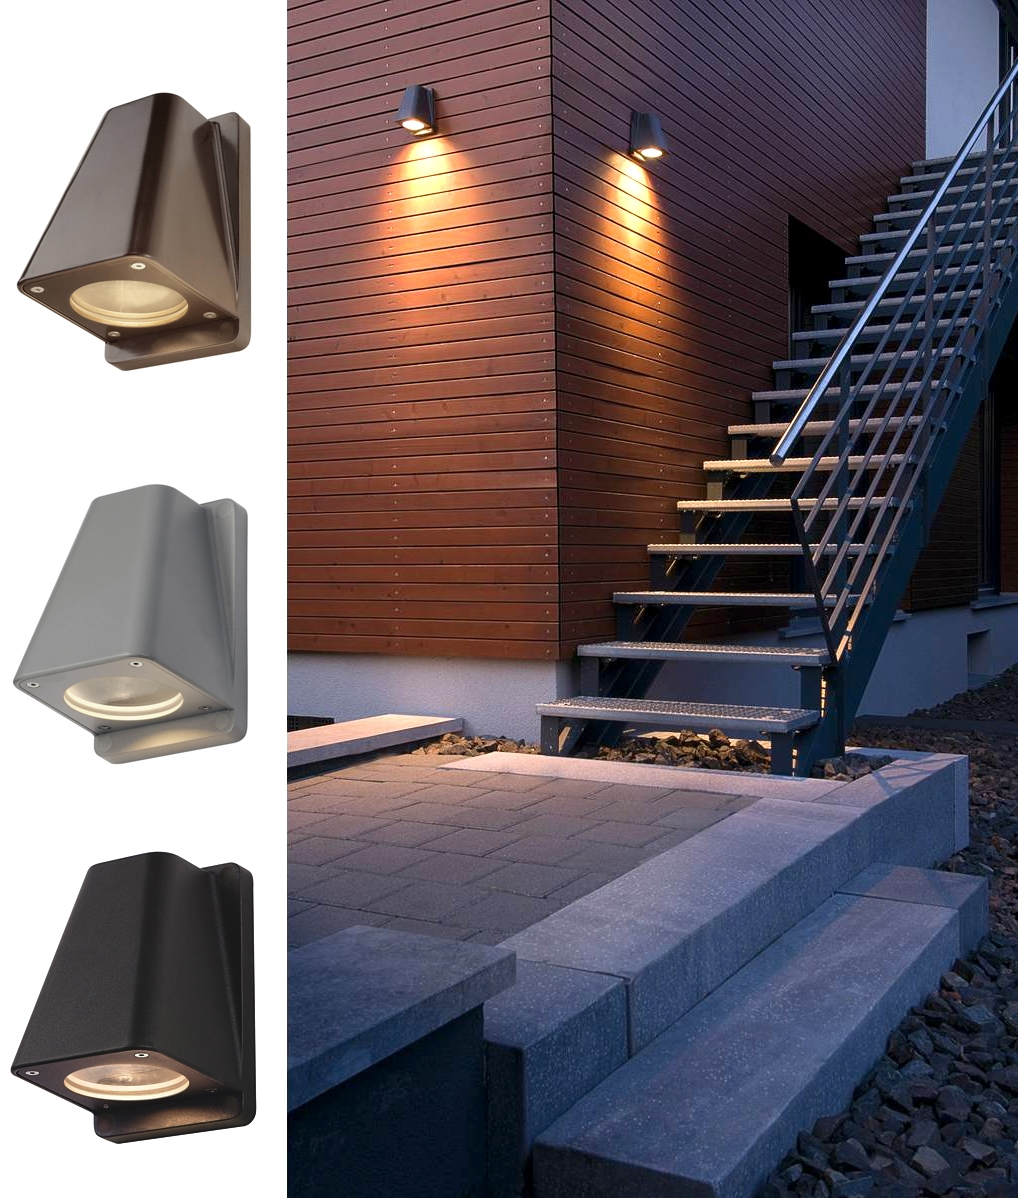 Exterior Low Light Pollution Wall Lights In A Mast Light Design